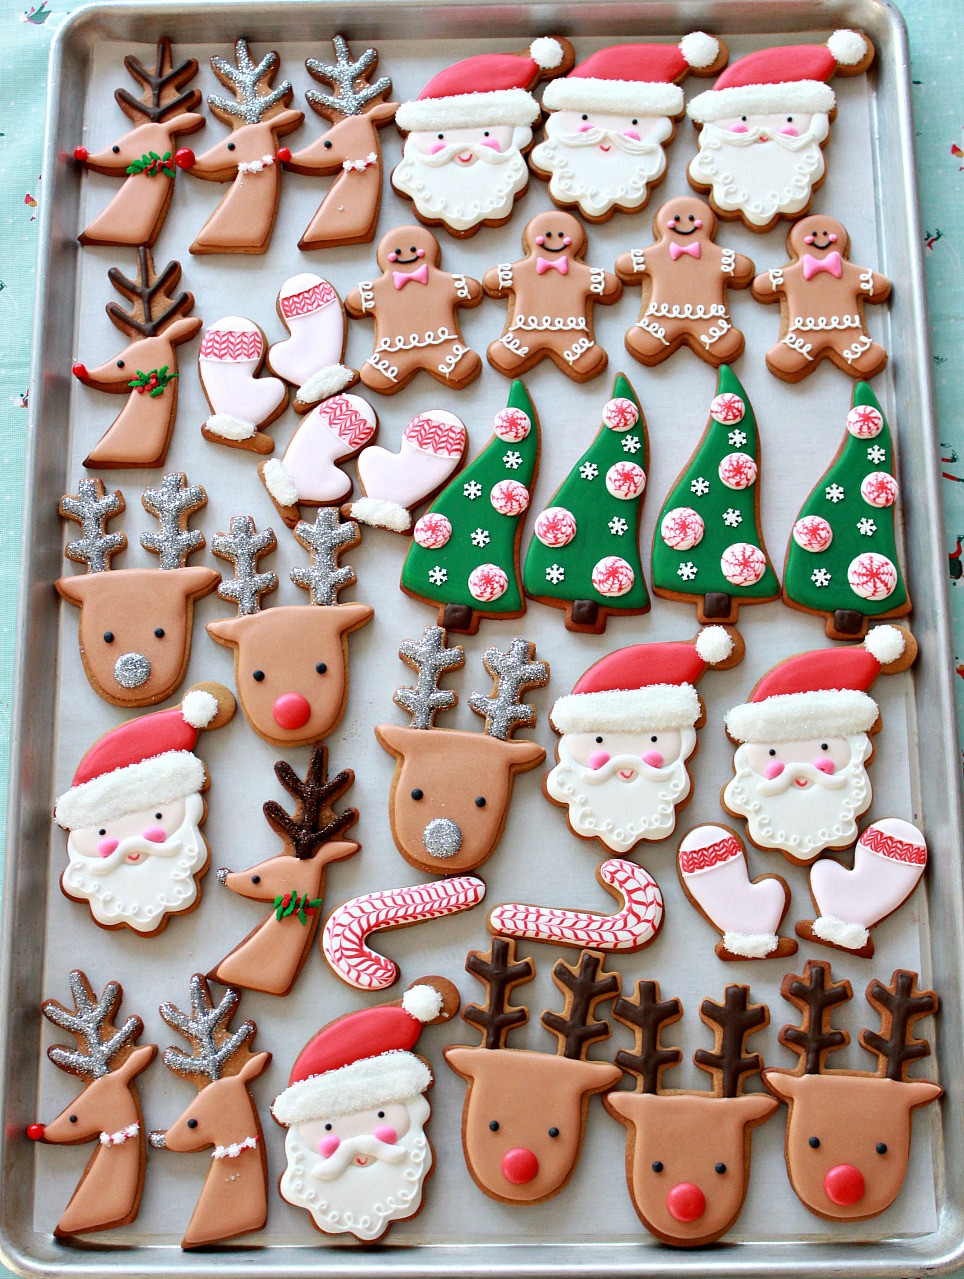 Decorating Christmas Cookies With Royal Icing  Video How to Decorate Christmas Cookies Simple Designs